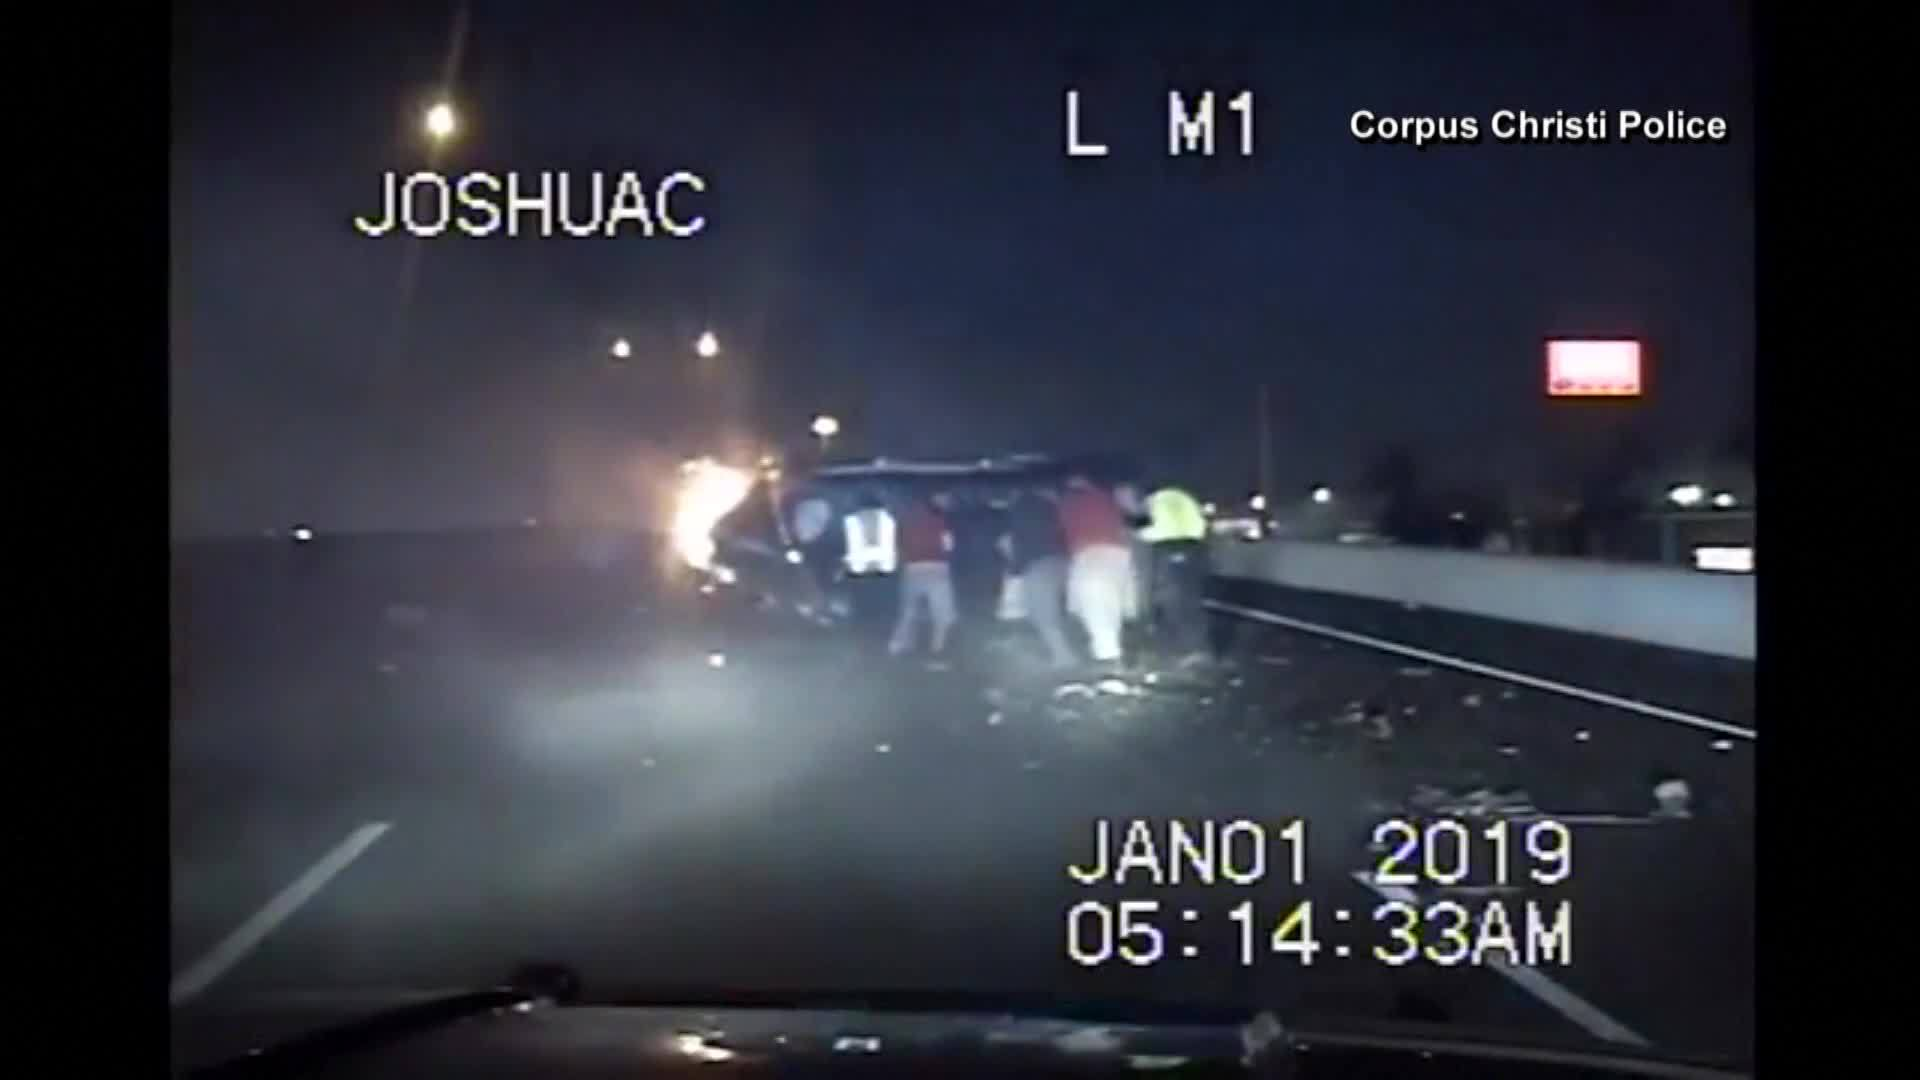 MOTORIST RESCUED FROM BURNING VEHICLE